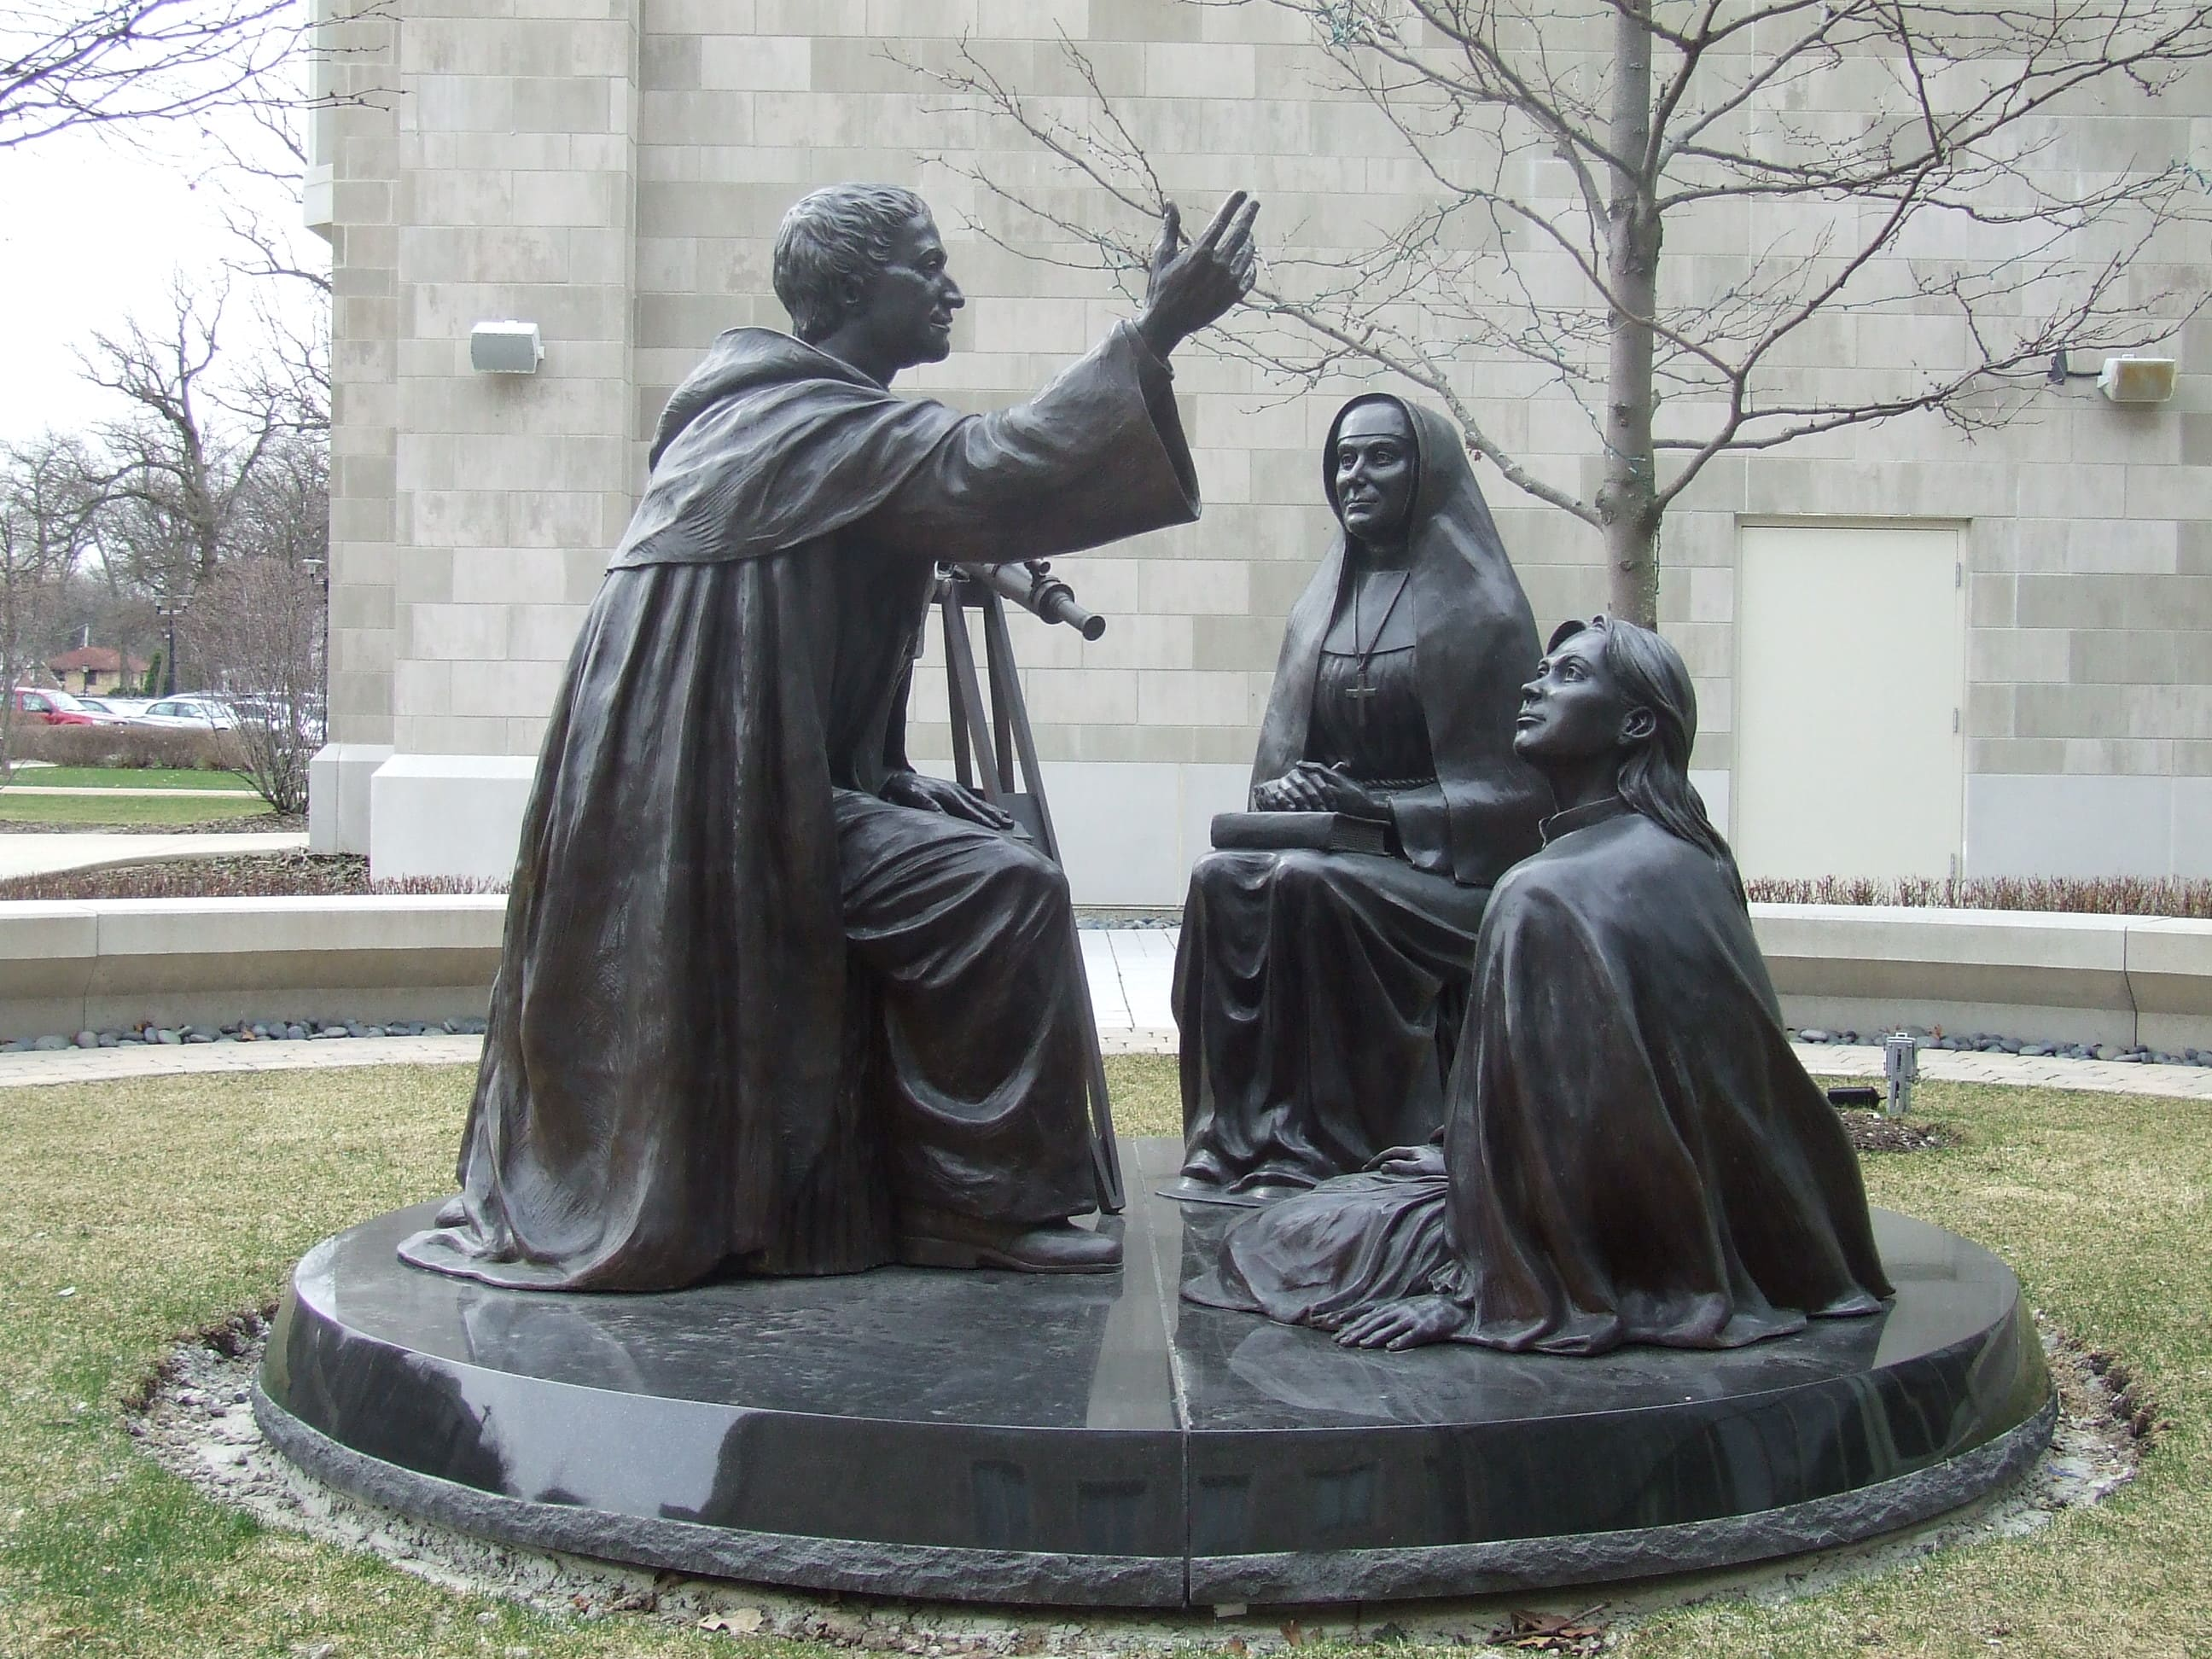 Founder's Court sculpture inspires during COVID-19 outbreak ...